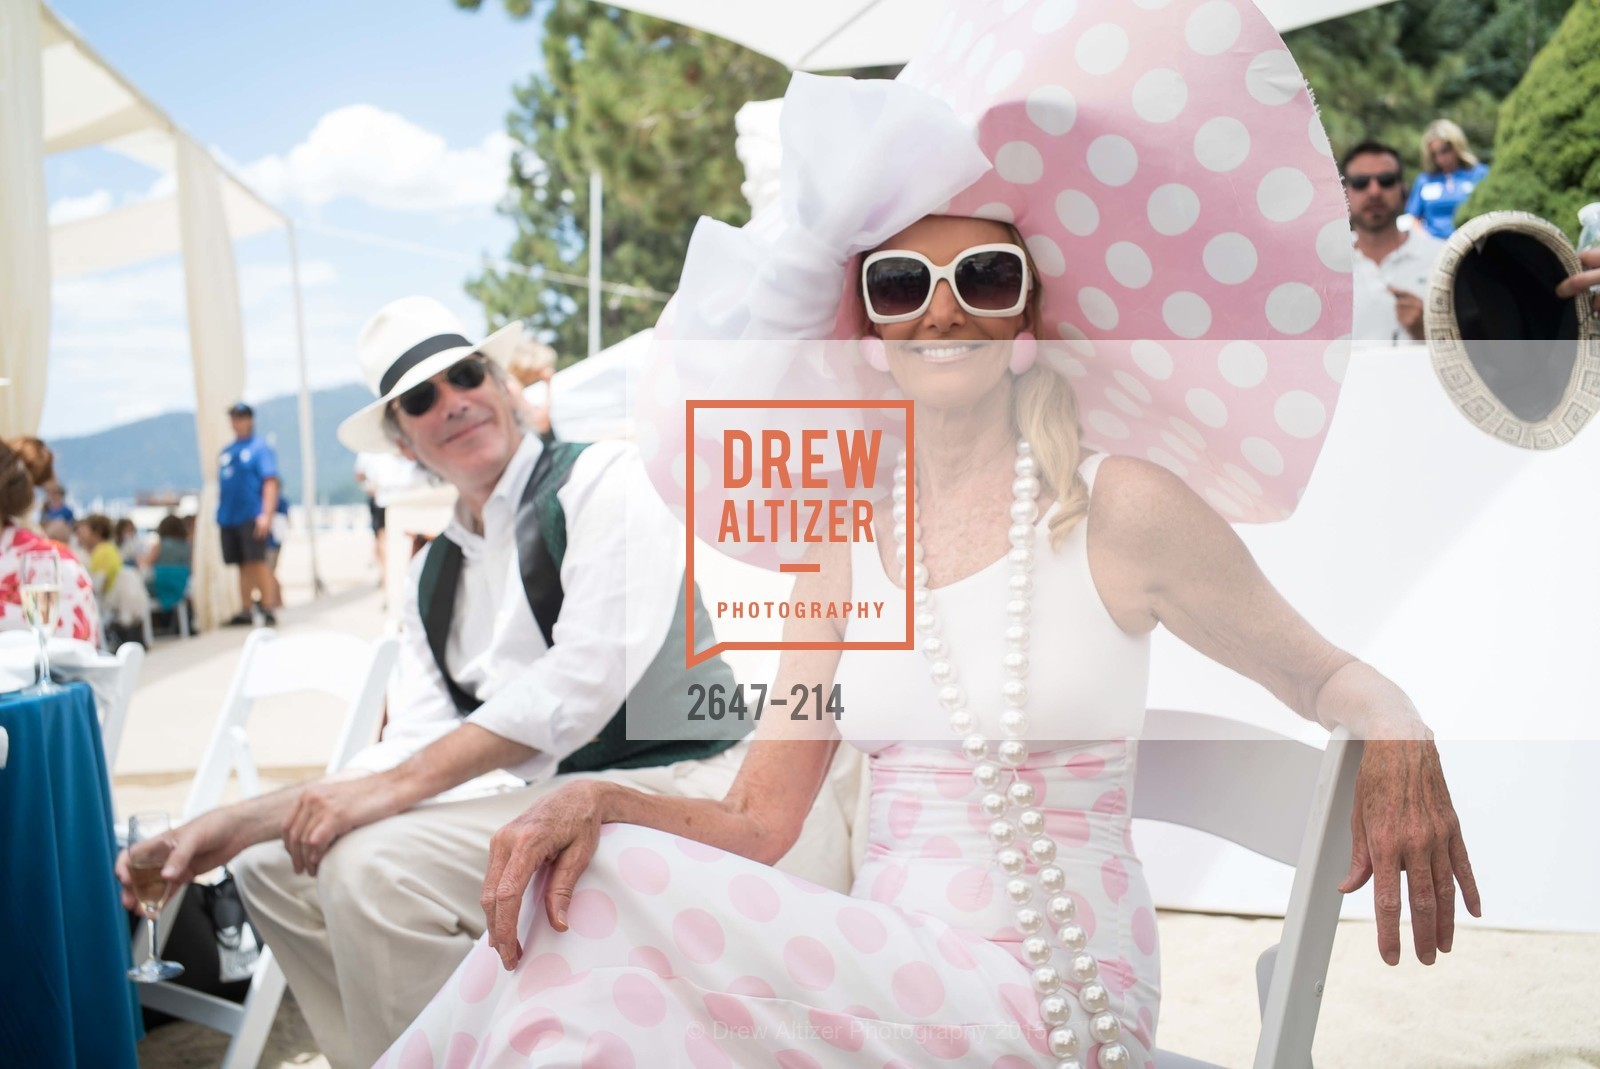 Belinda Berry, Saks Fifth Avenue and The League to Save Lake Tahoe Present Fashion on the Lake, Private Residence, August 1st, 2015,Drew Altizer, Drew Altizer Photography, full-service agency, private events, San Francisco photographer, photographer california